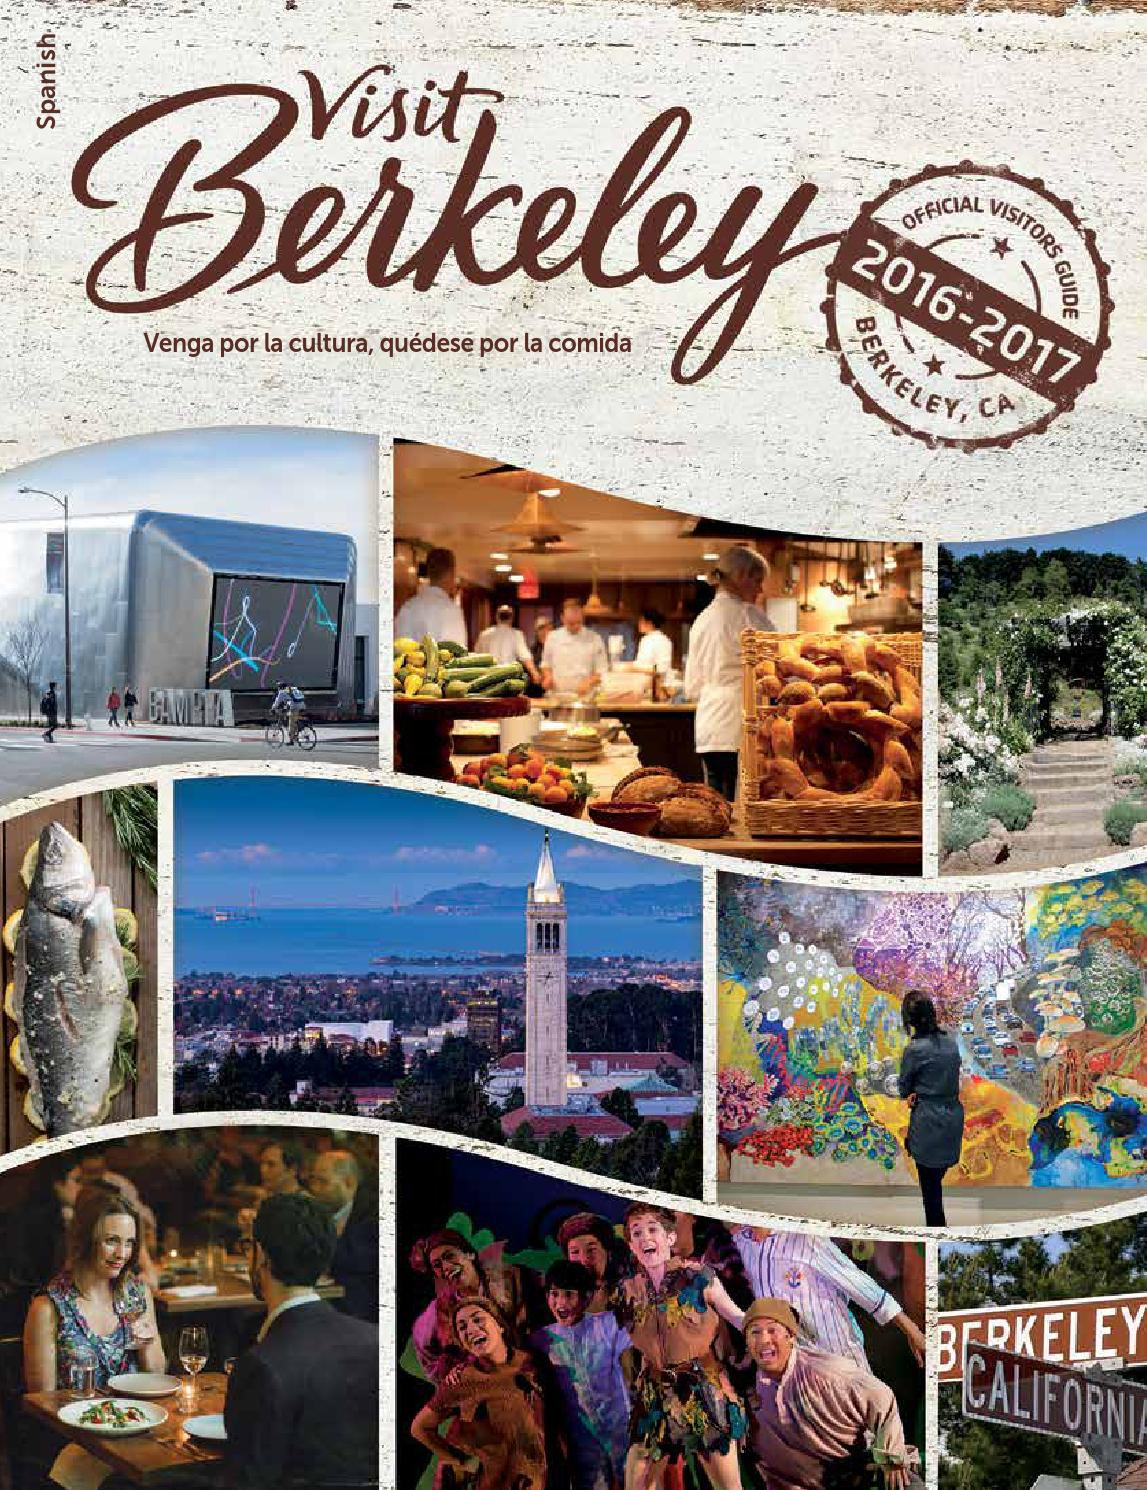 Berkeley Visitors Guide 16/17 - Spanish by Visit Berkeley - issuu